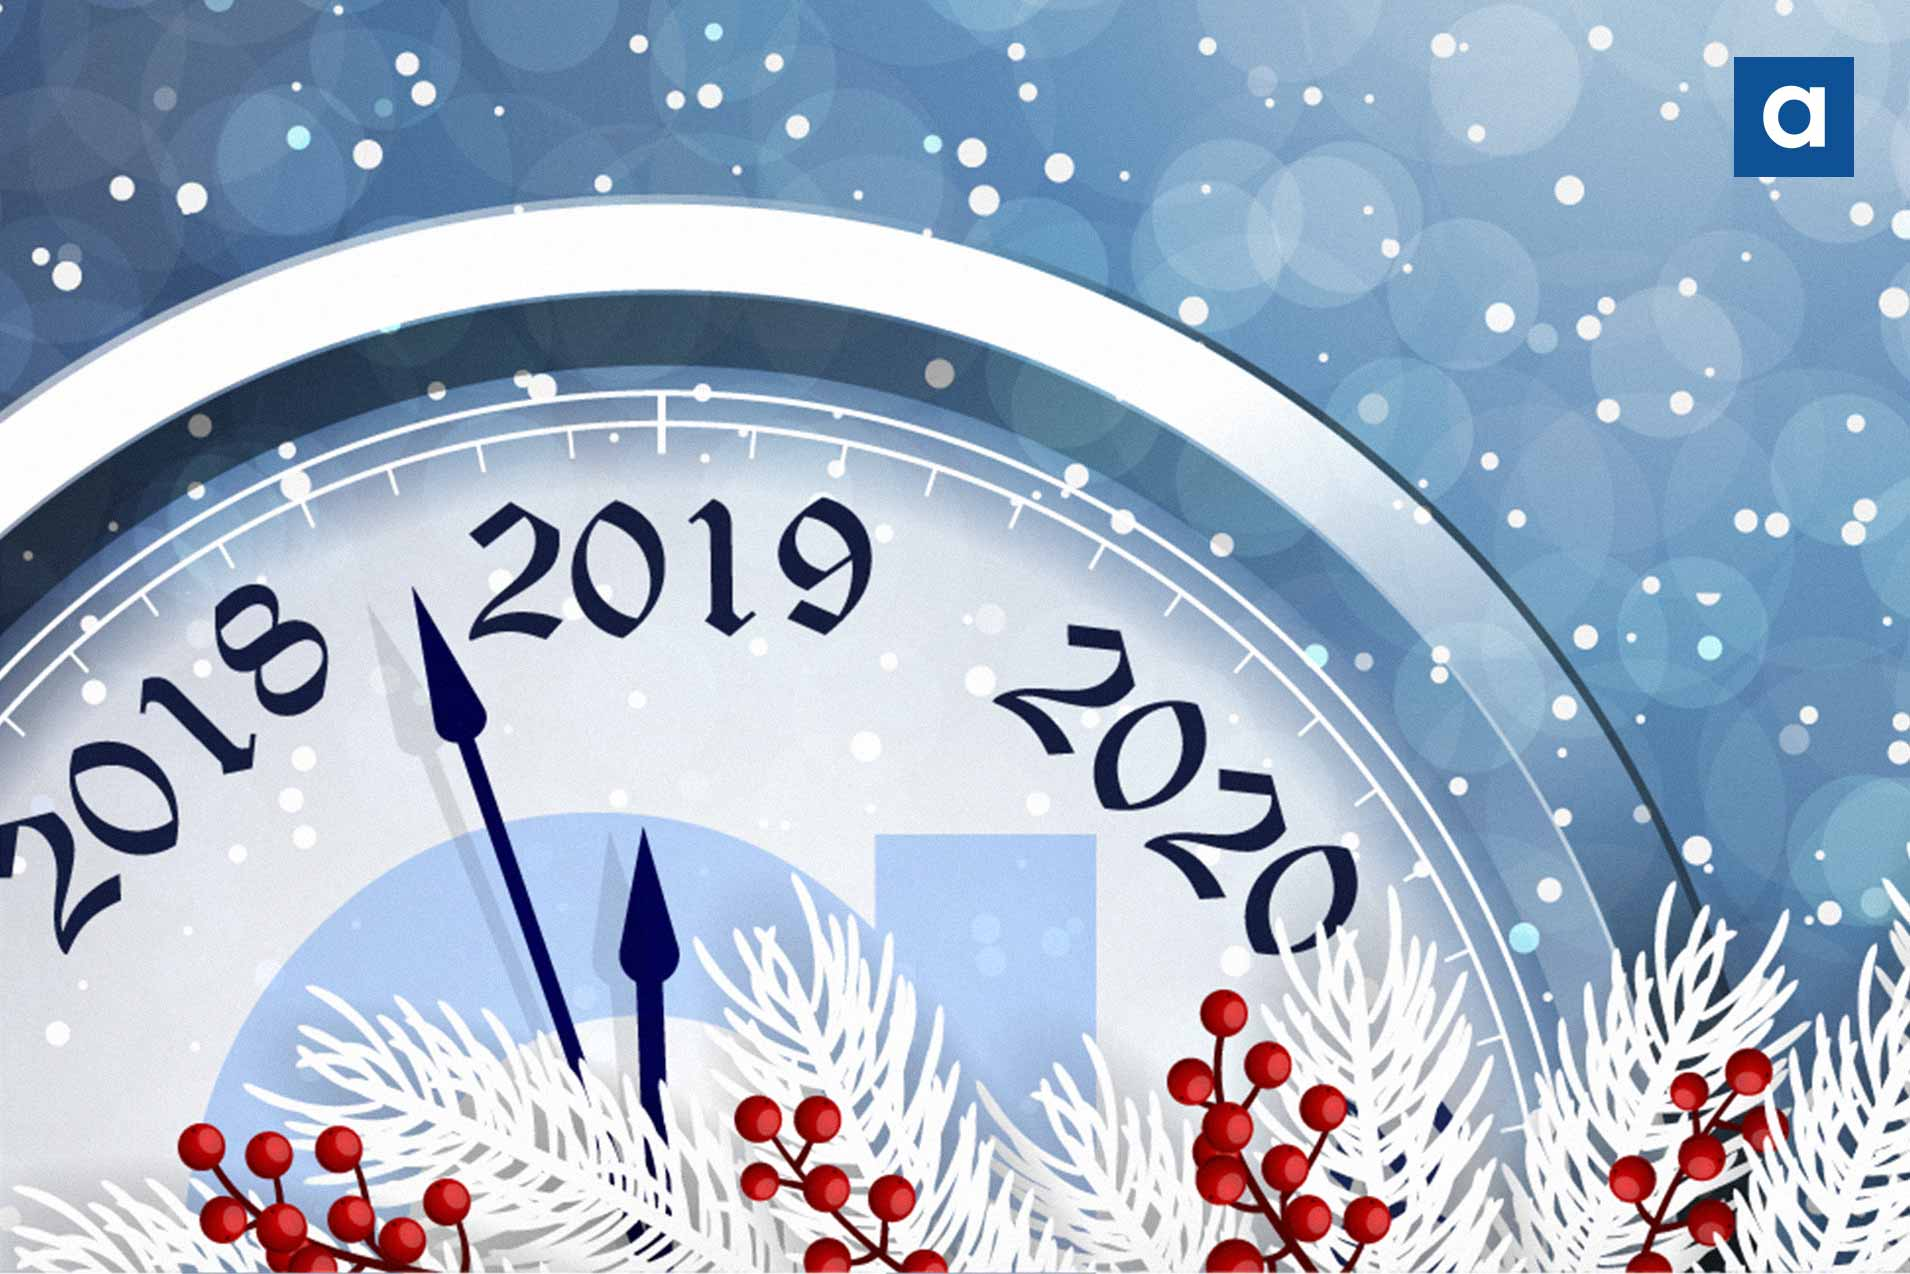 The Academia Group – Office and Support Hours over the Festive Season